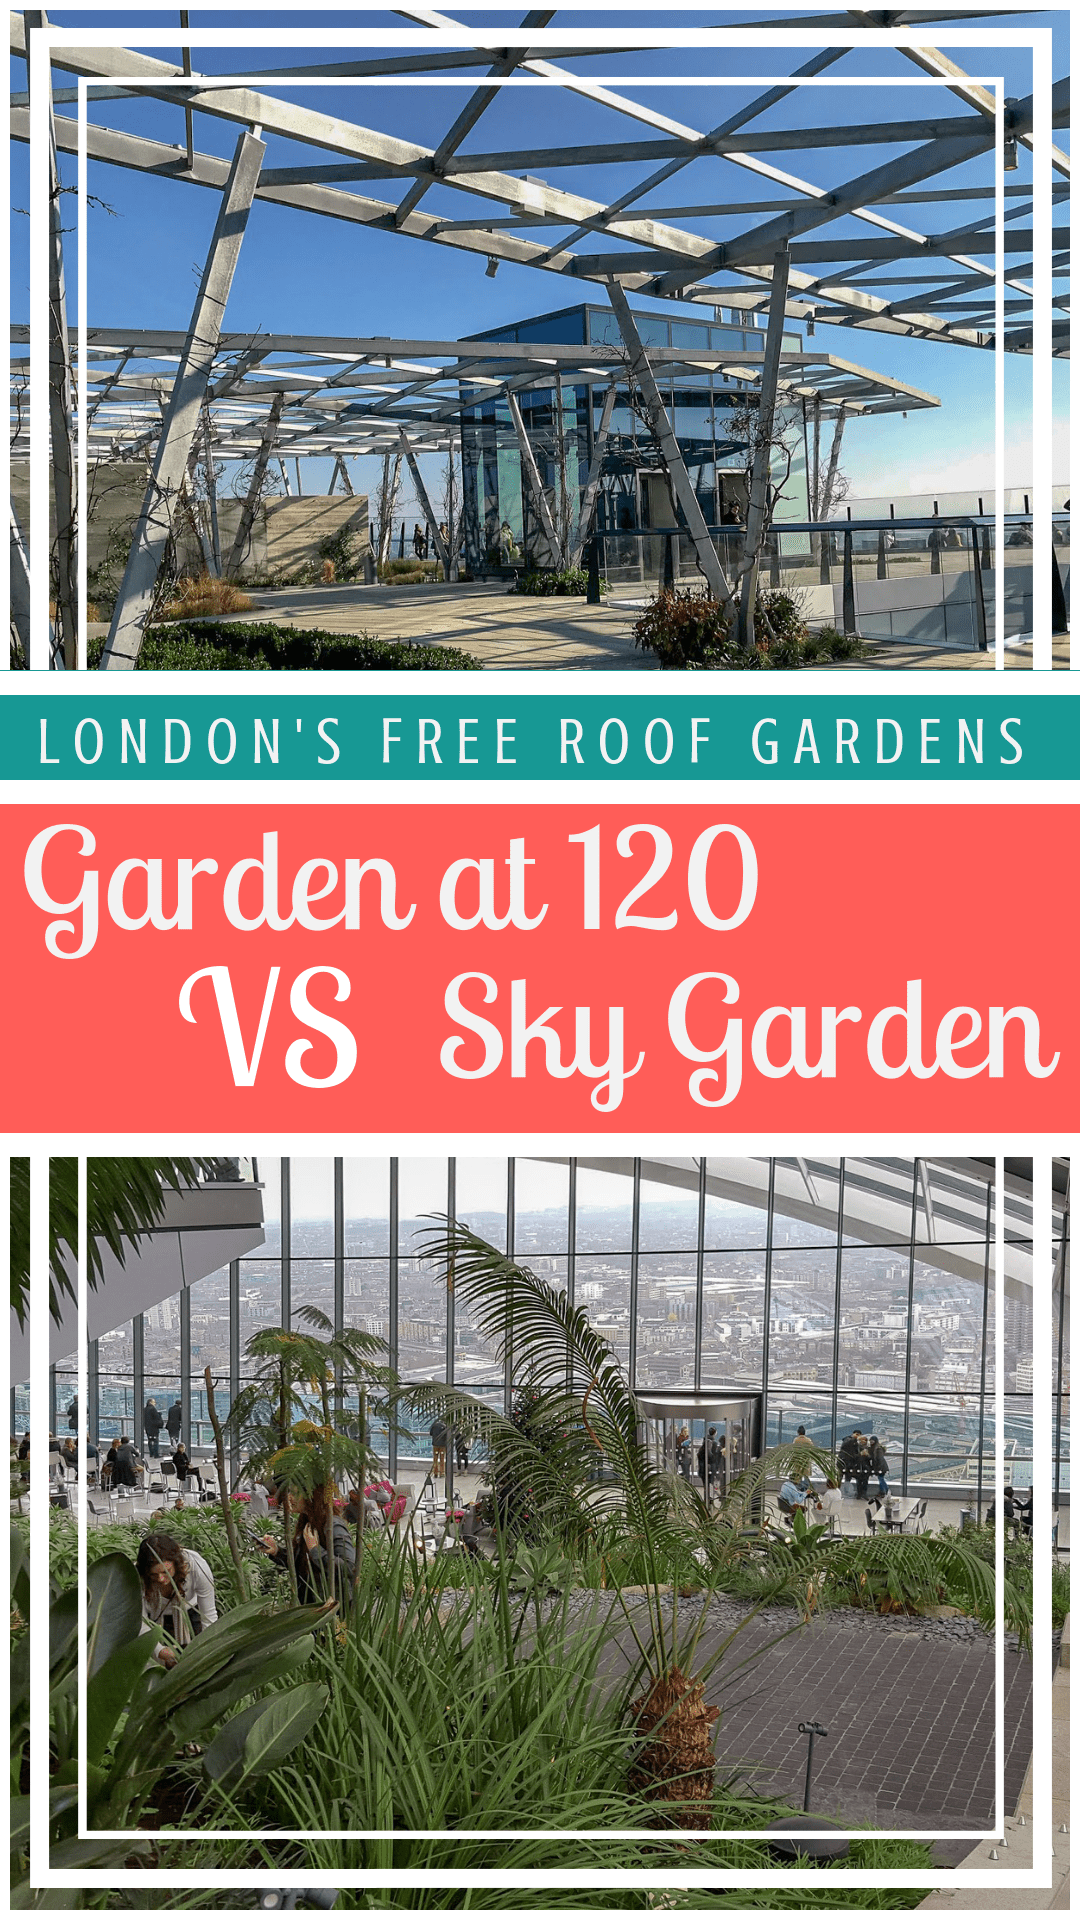 If you are visiting London and want to check out one of London's free roof gardens, should you visit Garden at 120 or Sky Garden on Fenchurch Street. #londonrooftop #londonfreerooftop #gardenat120 #skygarden #skygardenlondon